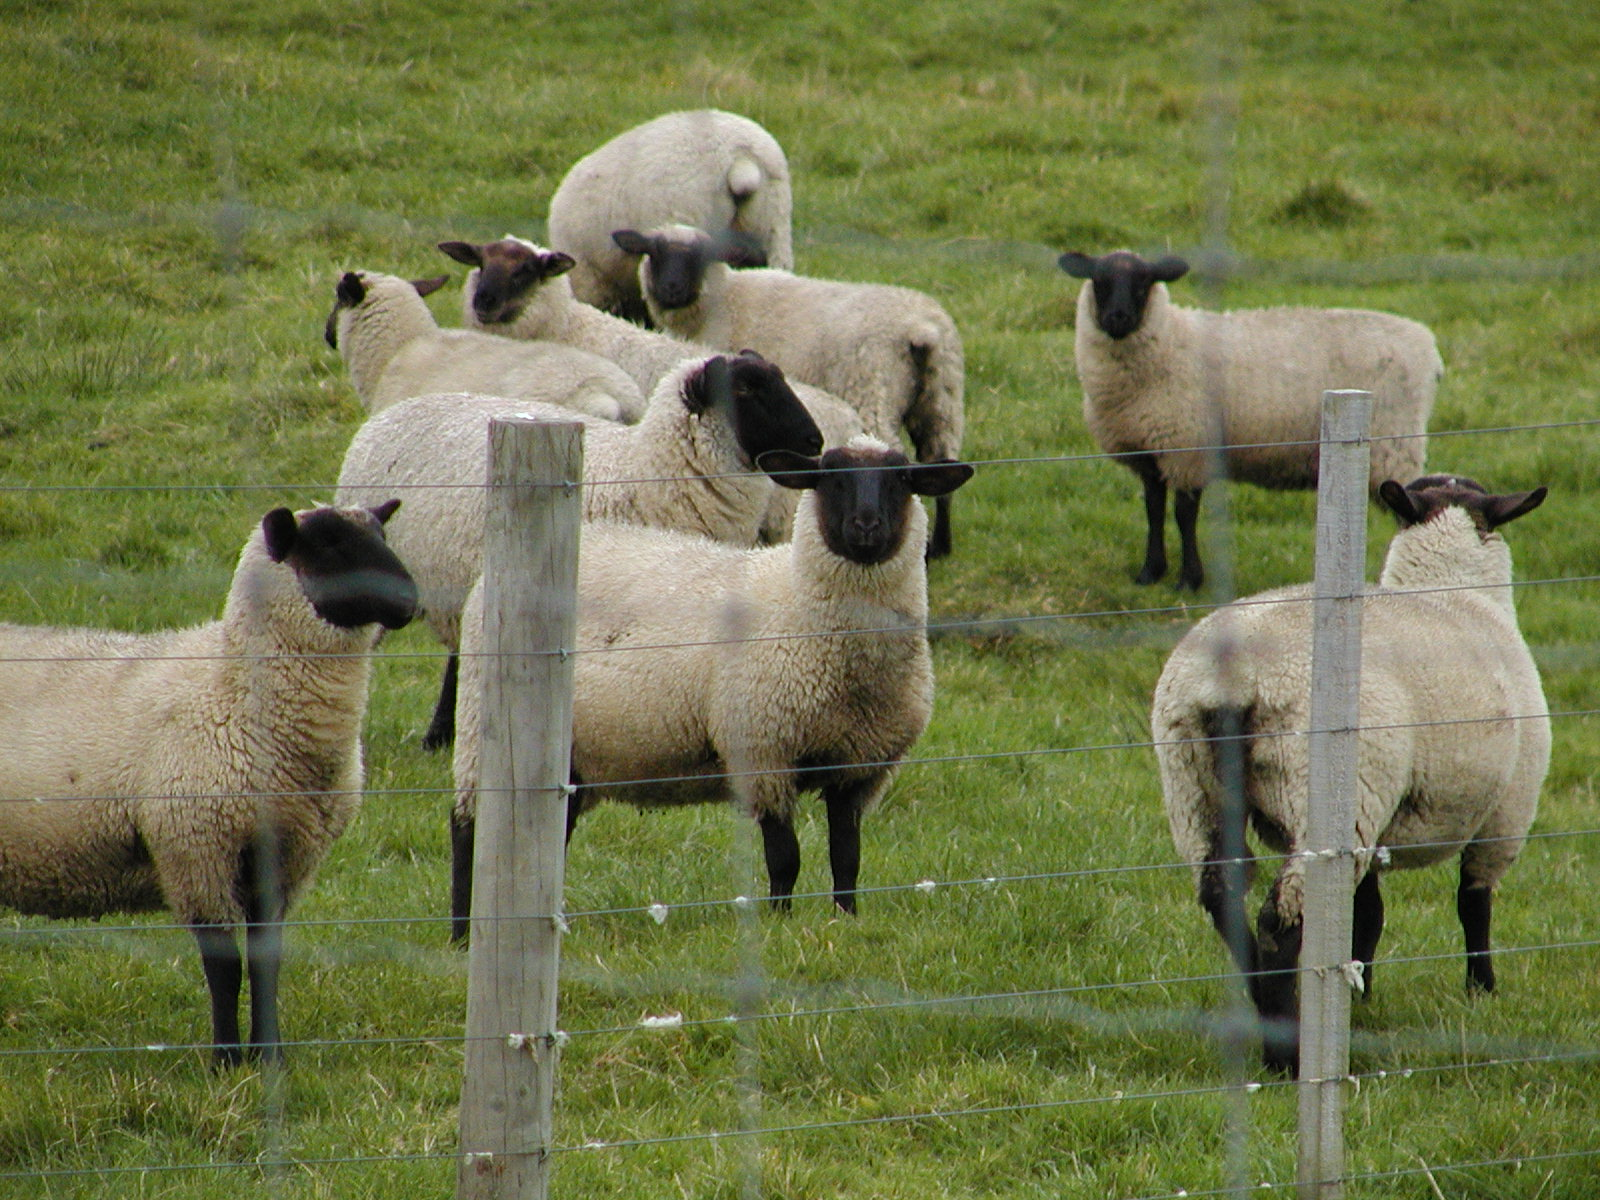 Sheep - 08 photo